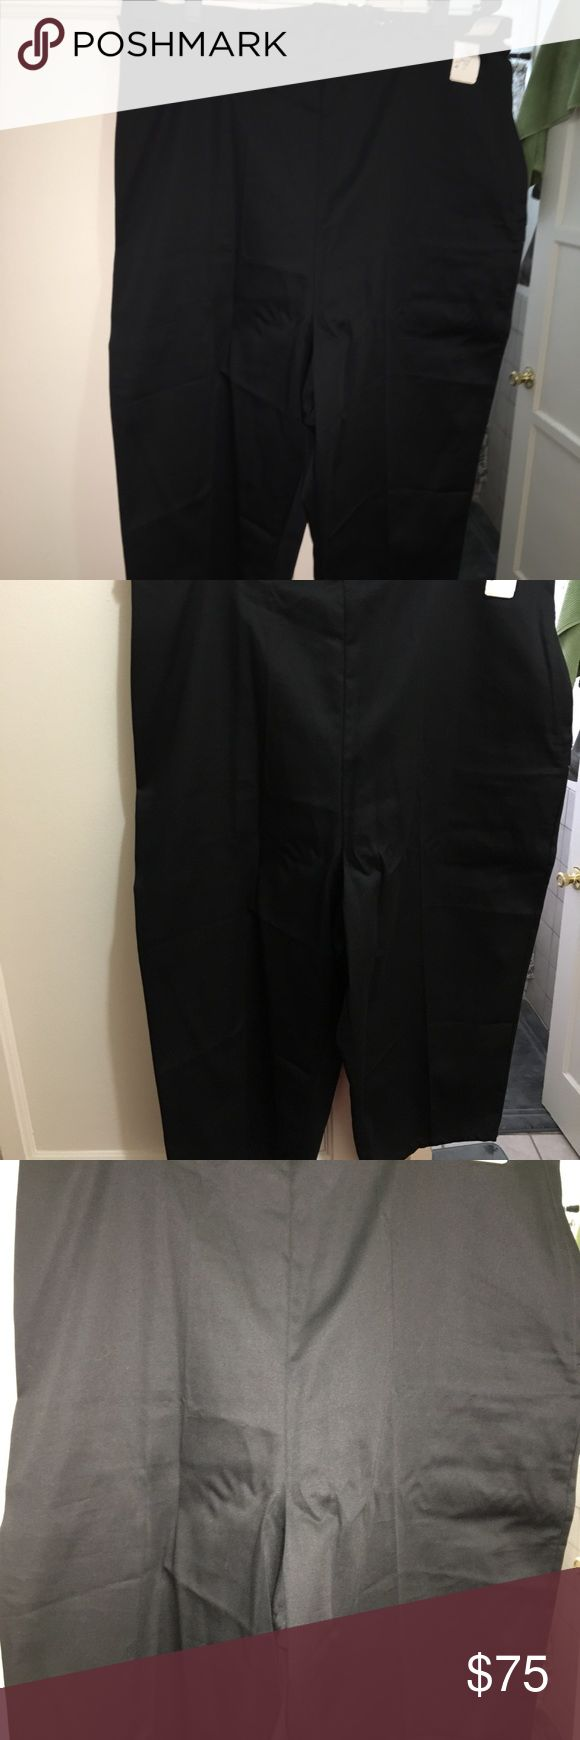 """DEADSTOCK vintage black pedal pushers size XL/2X Labeled """"Sears"""" size 40 Measurements are measured flat across... Waist 18 inches across Hips 23 inches across Inseam 18 inches Rise is 17 inches  Total length is 32 inches  Very little stretch since it is preshrunk 100% cotton. Includes a matching belt!  Metal zipper looks great and works well. Previous owner added some stitching to alter it but it was never worn. The seller I purchased it from let out the stitching. Please refer to the…"""